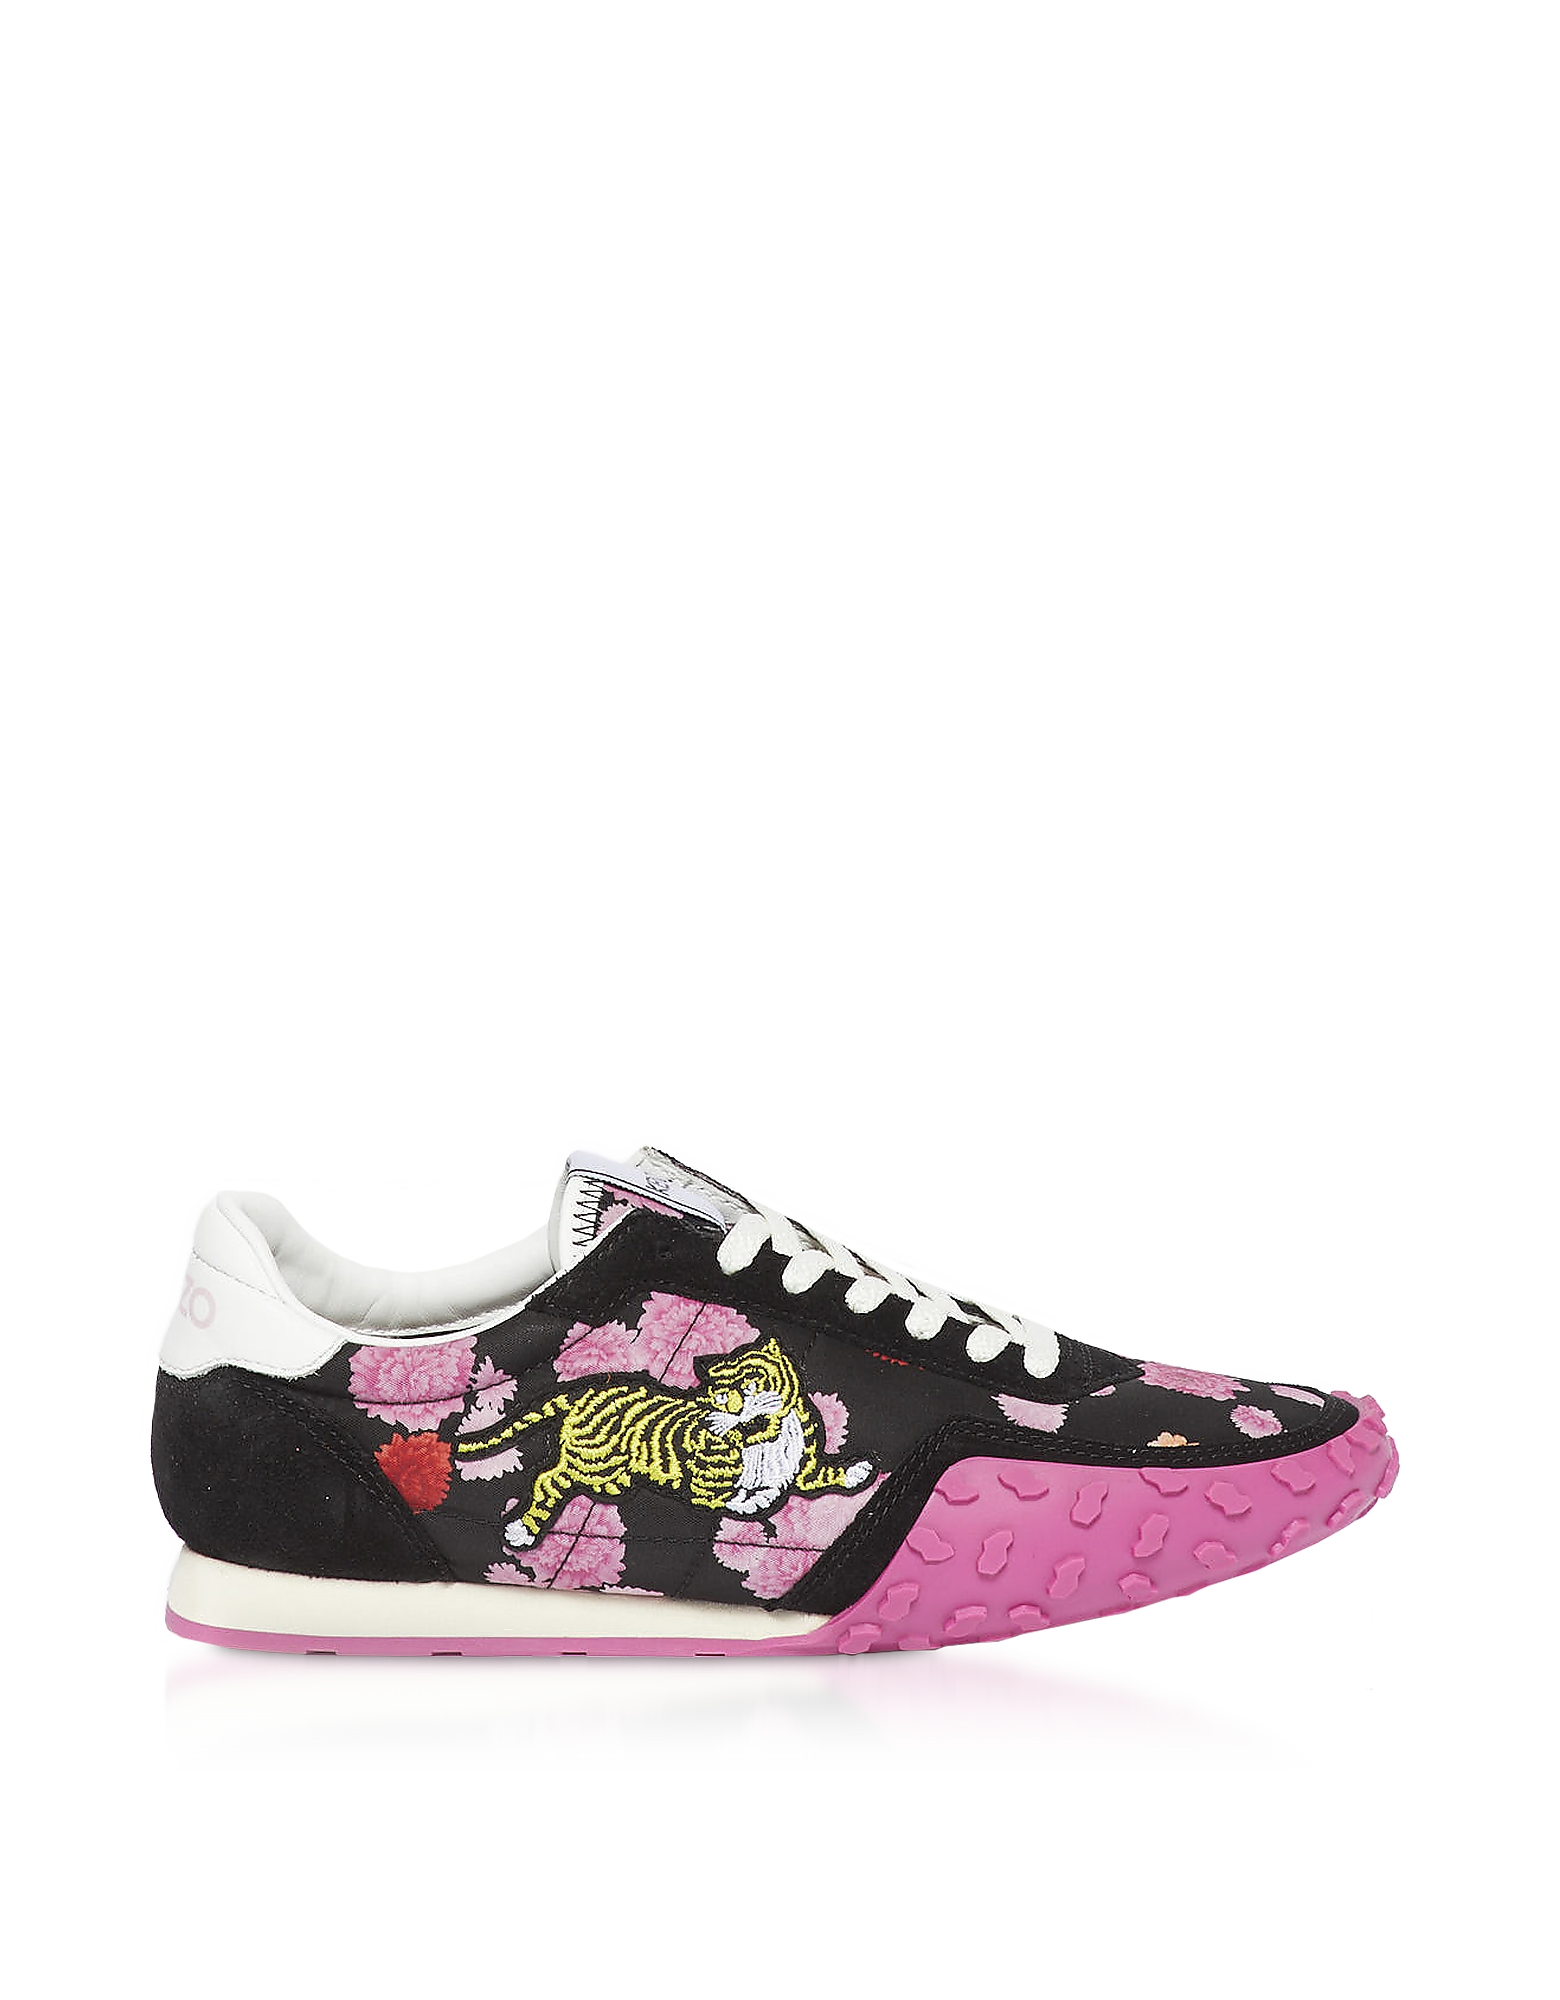 Black and Fuchsia Kenzo Move Women's Sneakers